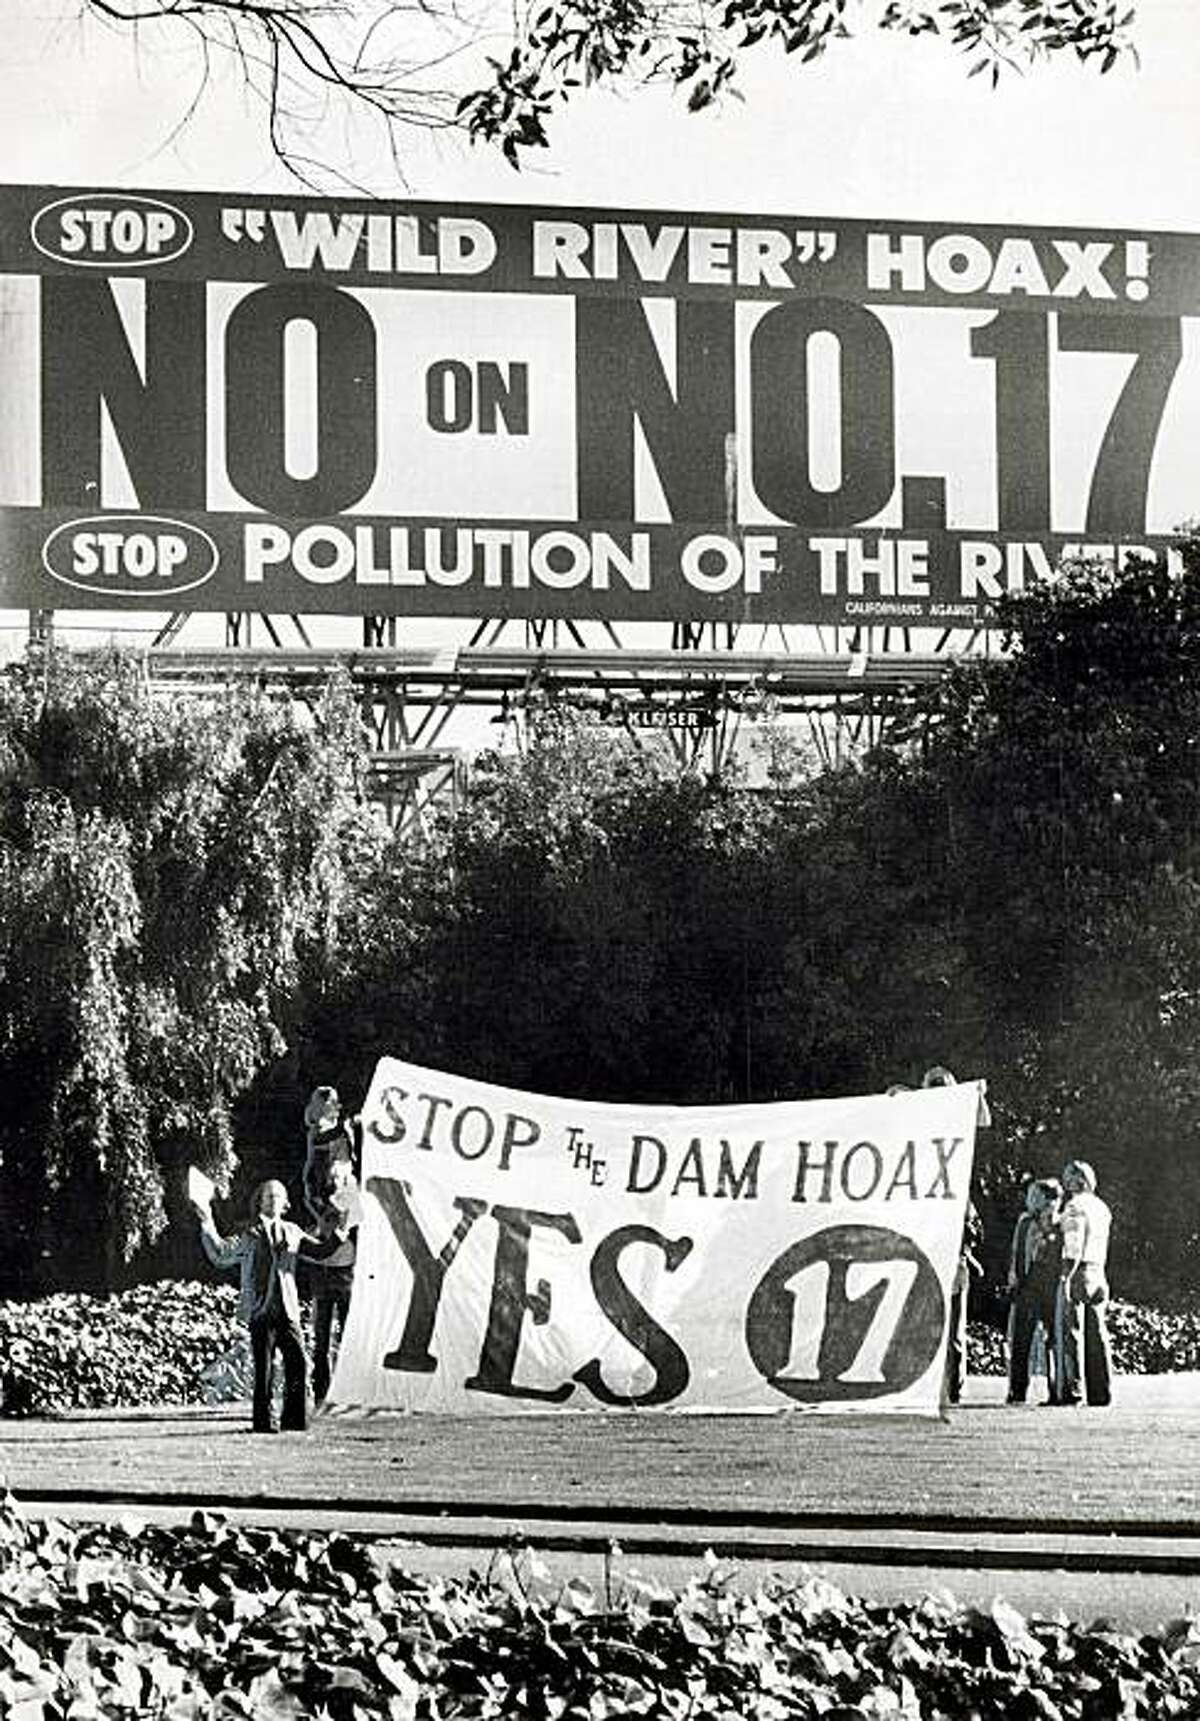 9-22-2009_21_1513.jpg October 21,1974 - Sierra Club Protest, Giant Billboard, 5th and Bryants Streets, Proposition 17, Larry E. Moss Sierra Club, Associate Conservation Director, Utilites Projects Melones Dam Stan Creighton Chronicle Archive / 1974